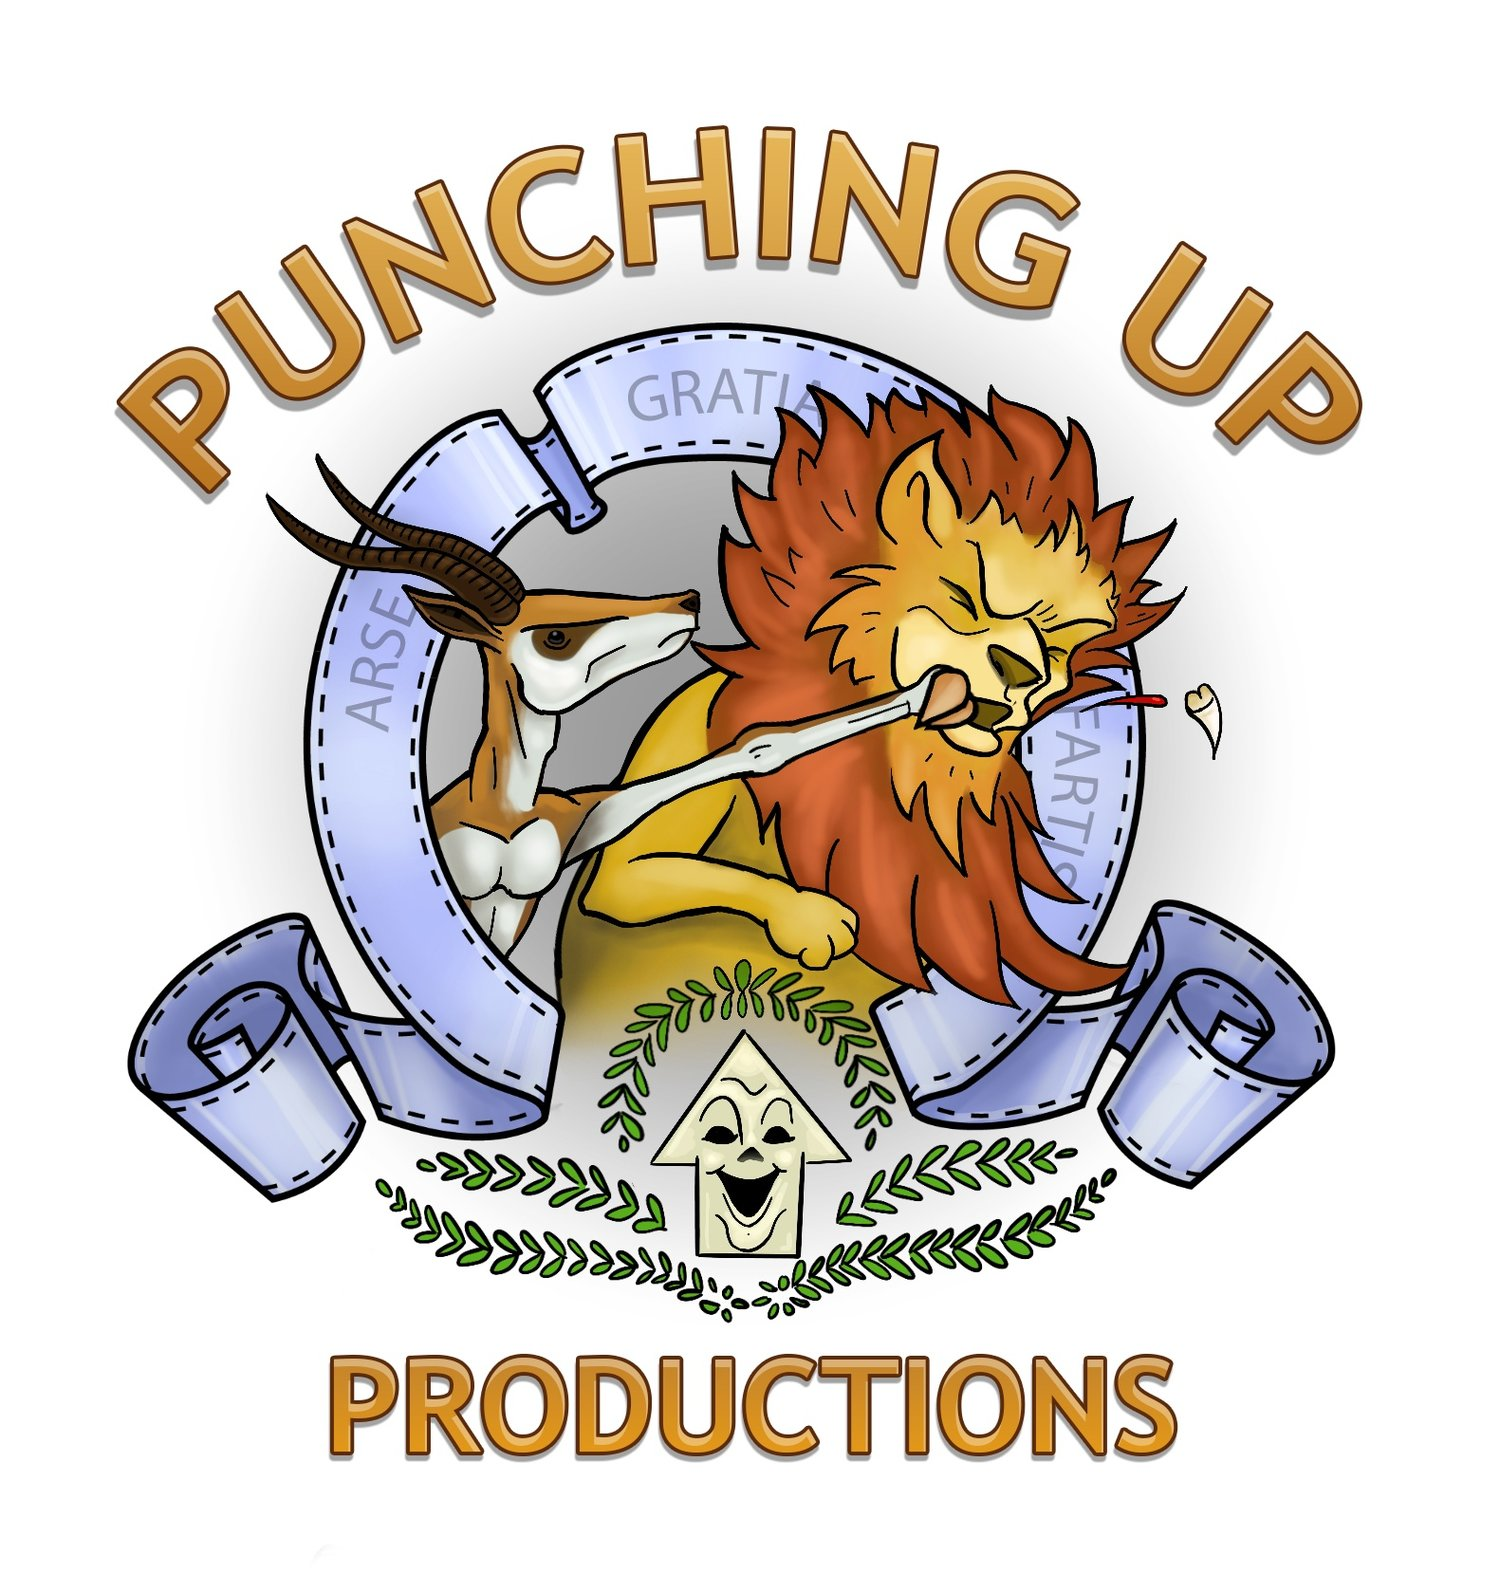 Punching Up Productions